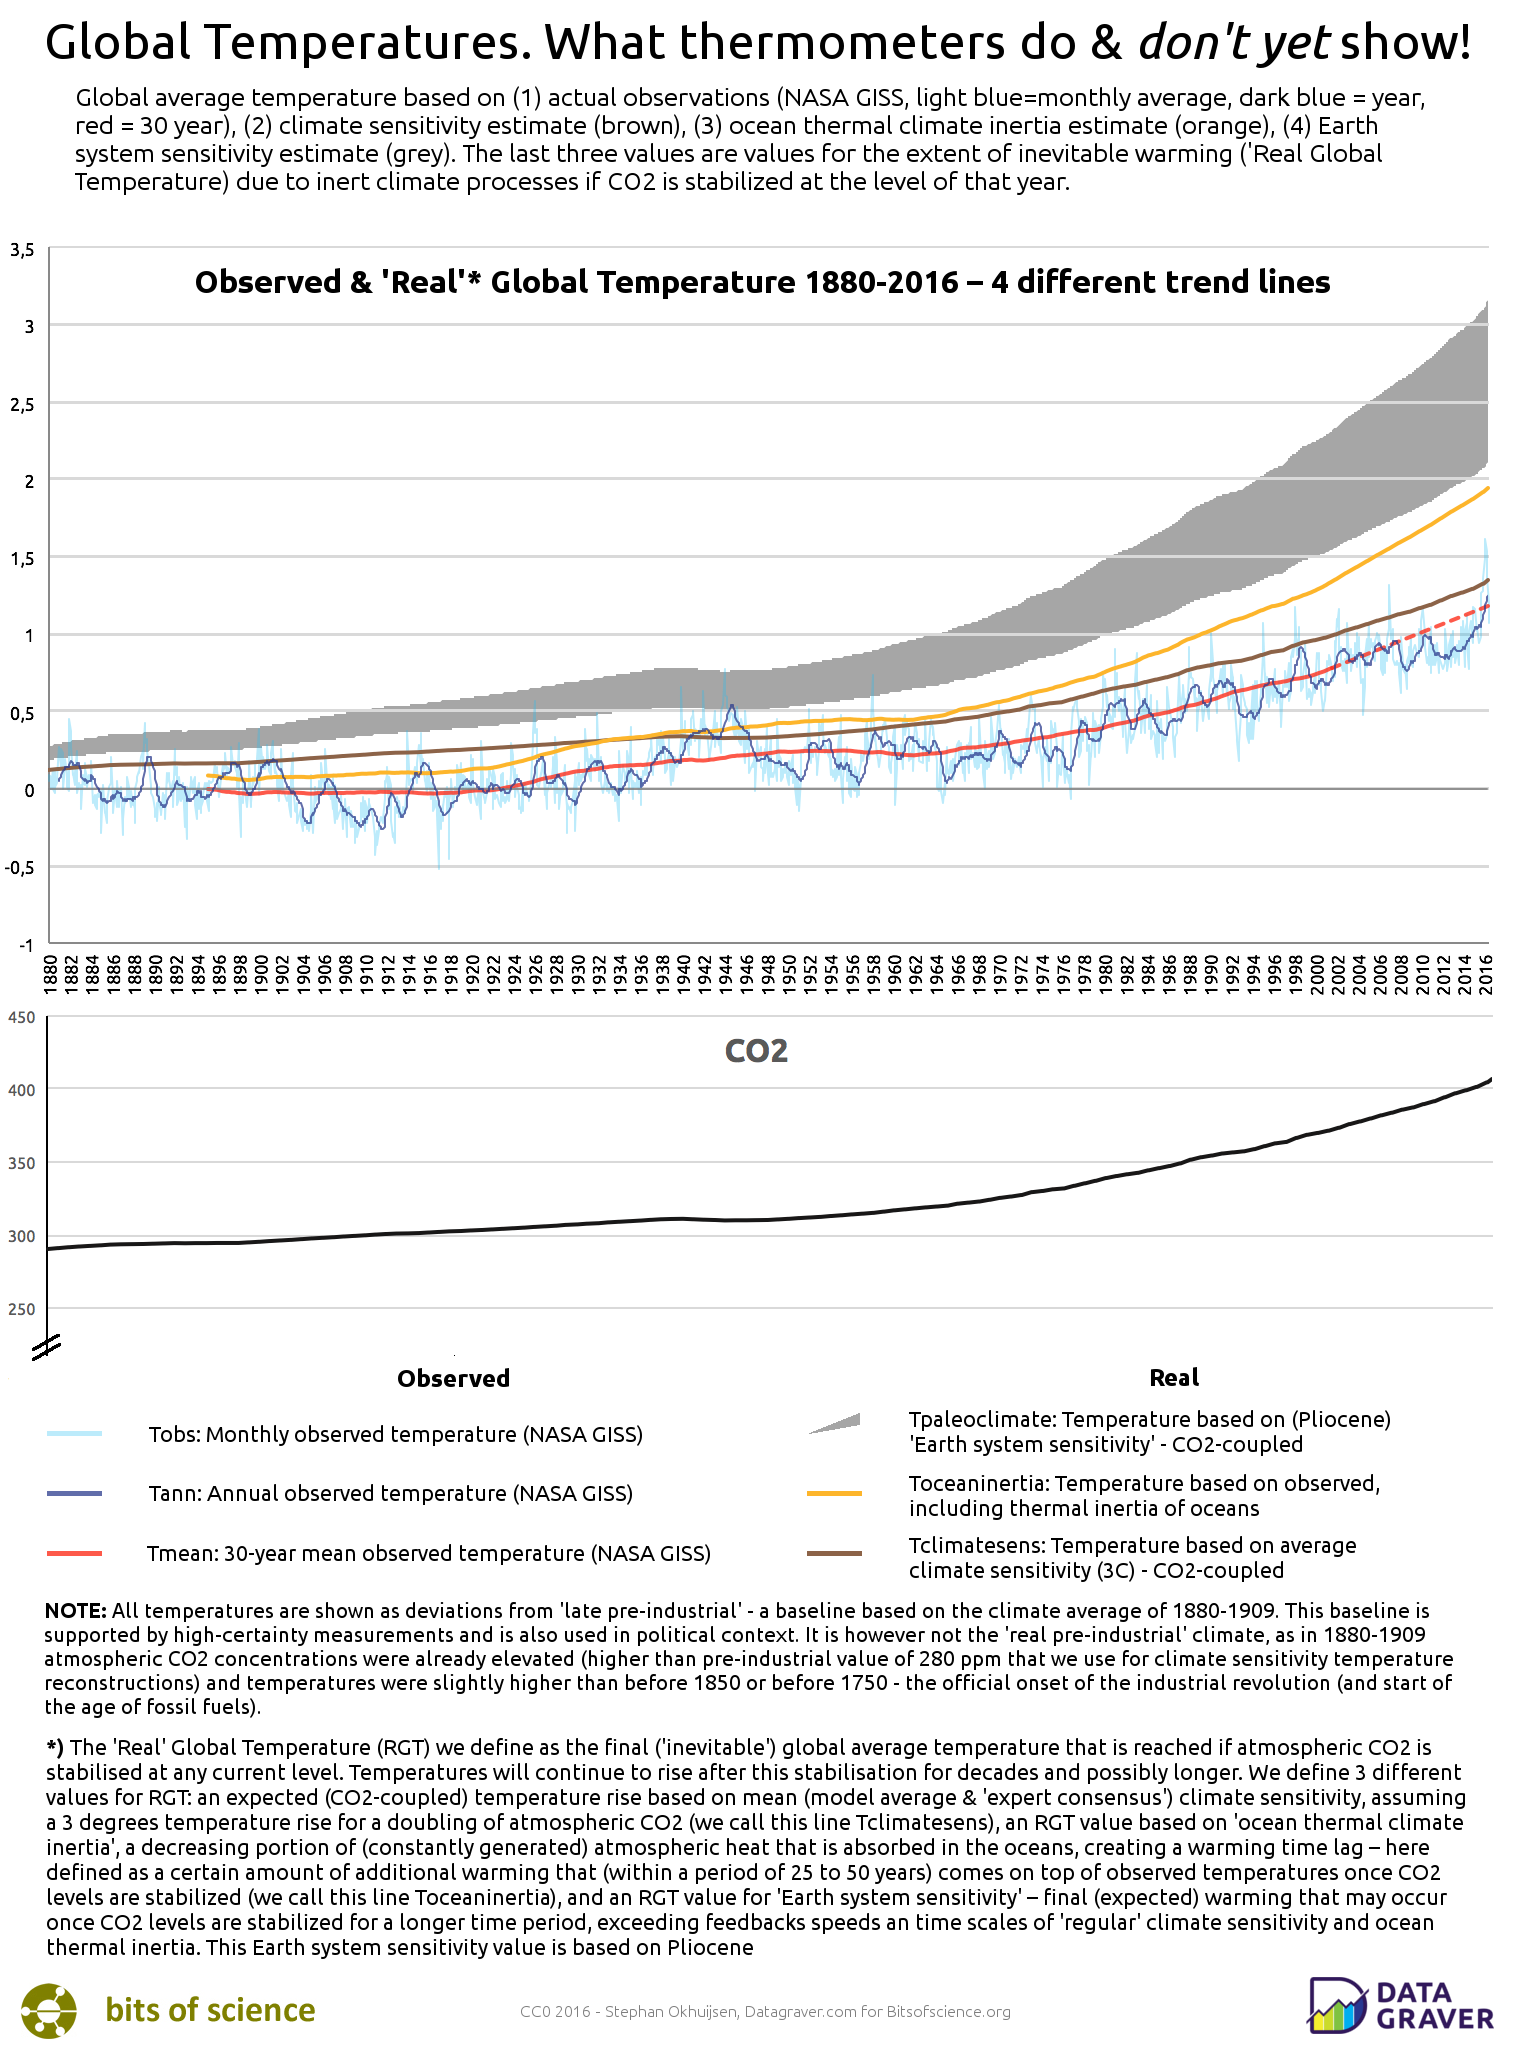 'Real' Global Temperature - 4 different climate trend lines in one graph, compared to atmospheric CO2 concentration. Please link to Bitsofscience.org